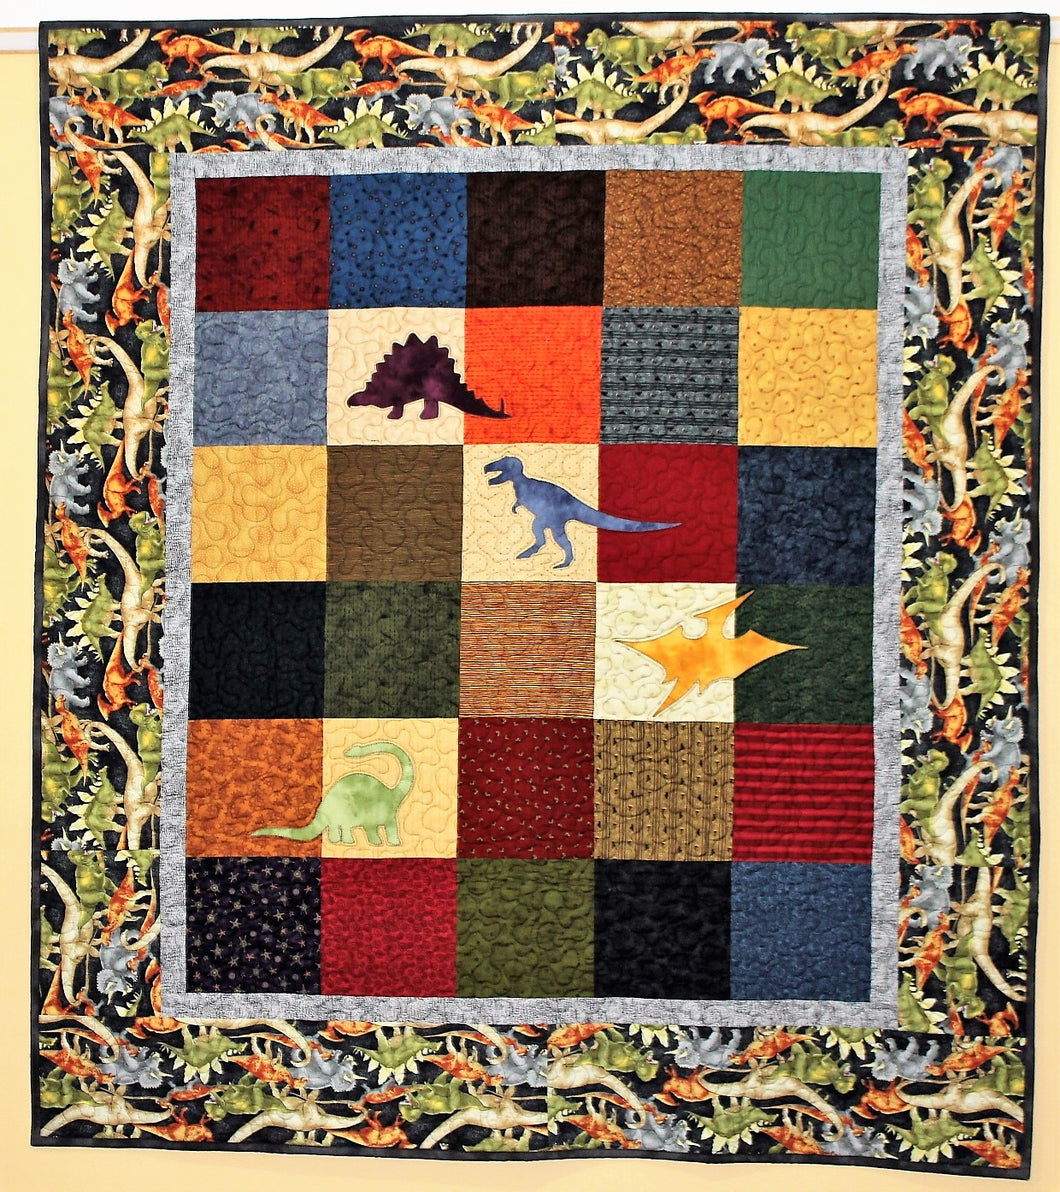 Dinosaur Quilt by The Gourmet Quilter